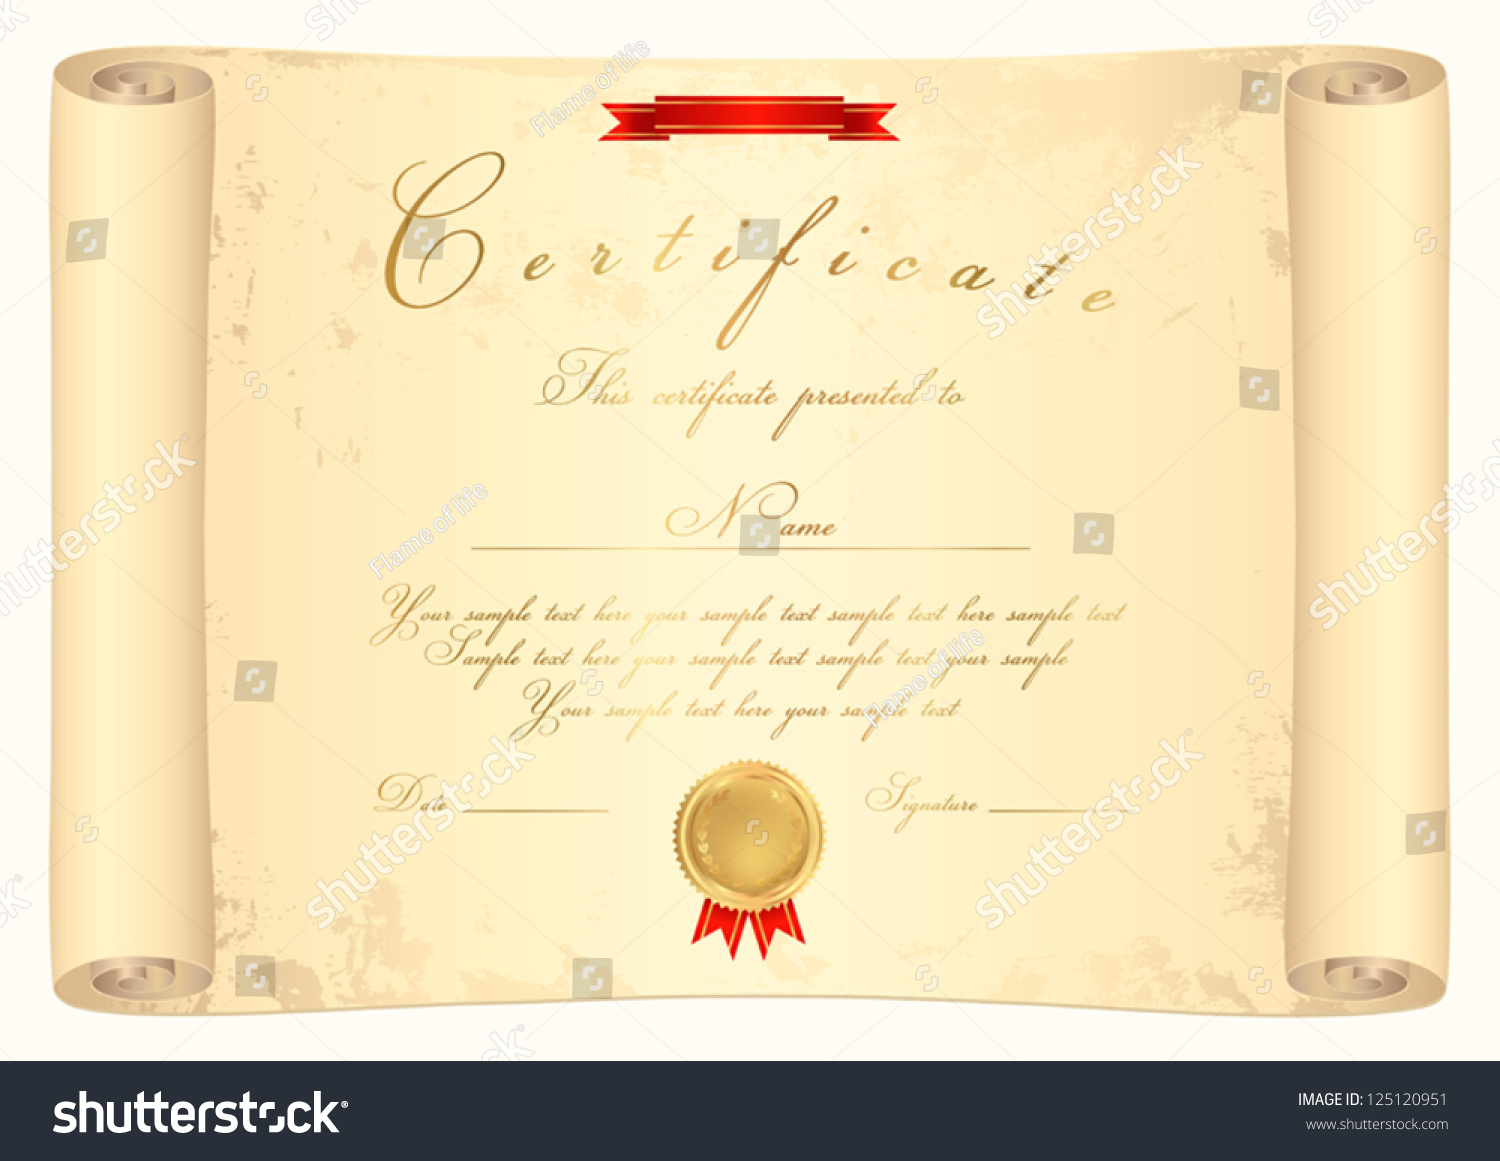 Scroll certificate completion template parchment paper stock scroll certificate completion template parchment paper stock vector 125120951 shutterstock yelopaper Image collections